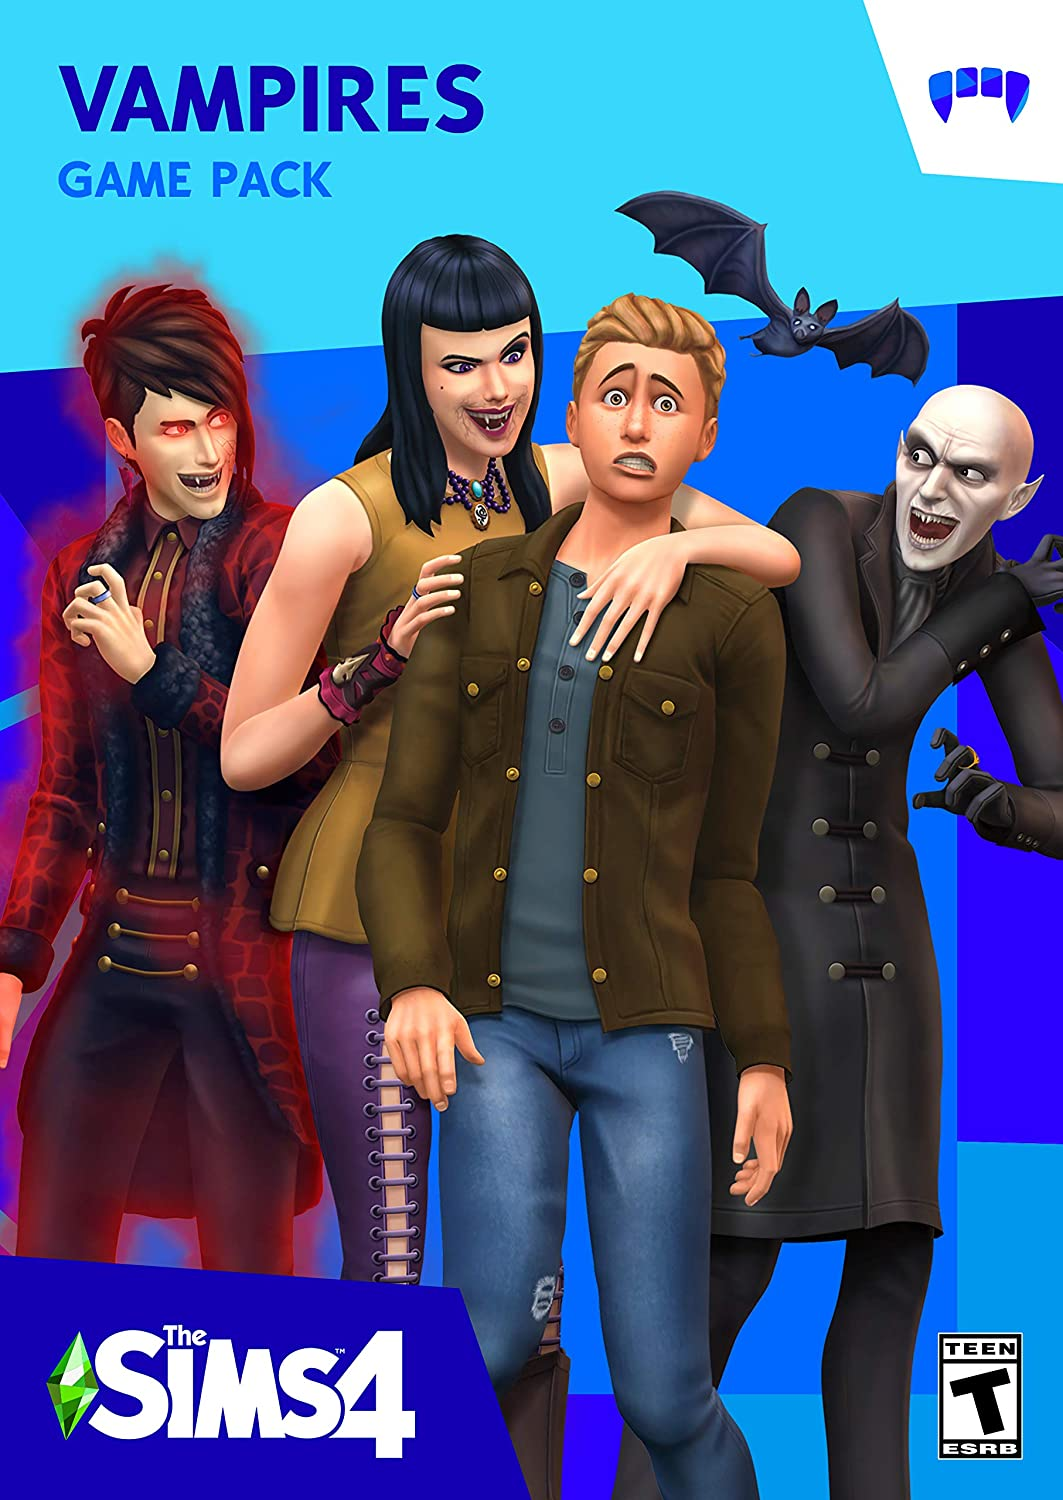 San New Shipping Free Shipping Francisco Mall The Sims 4 - Code Game Online Vampires